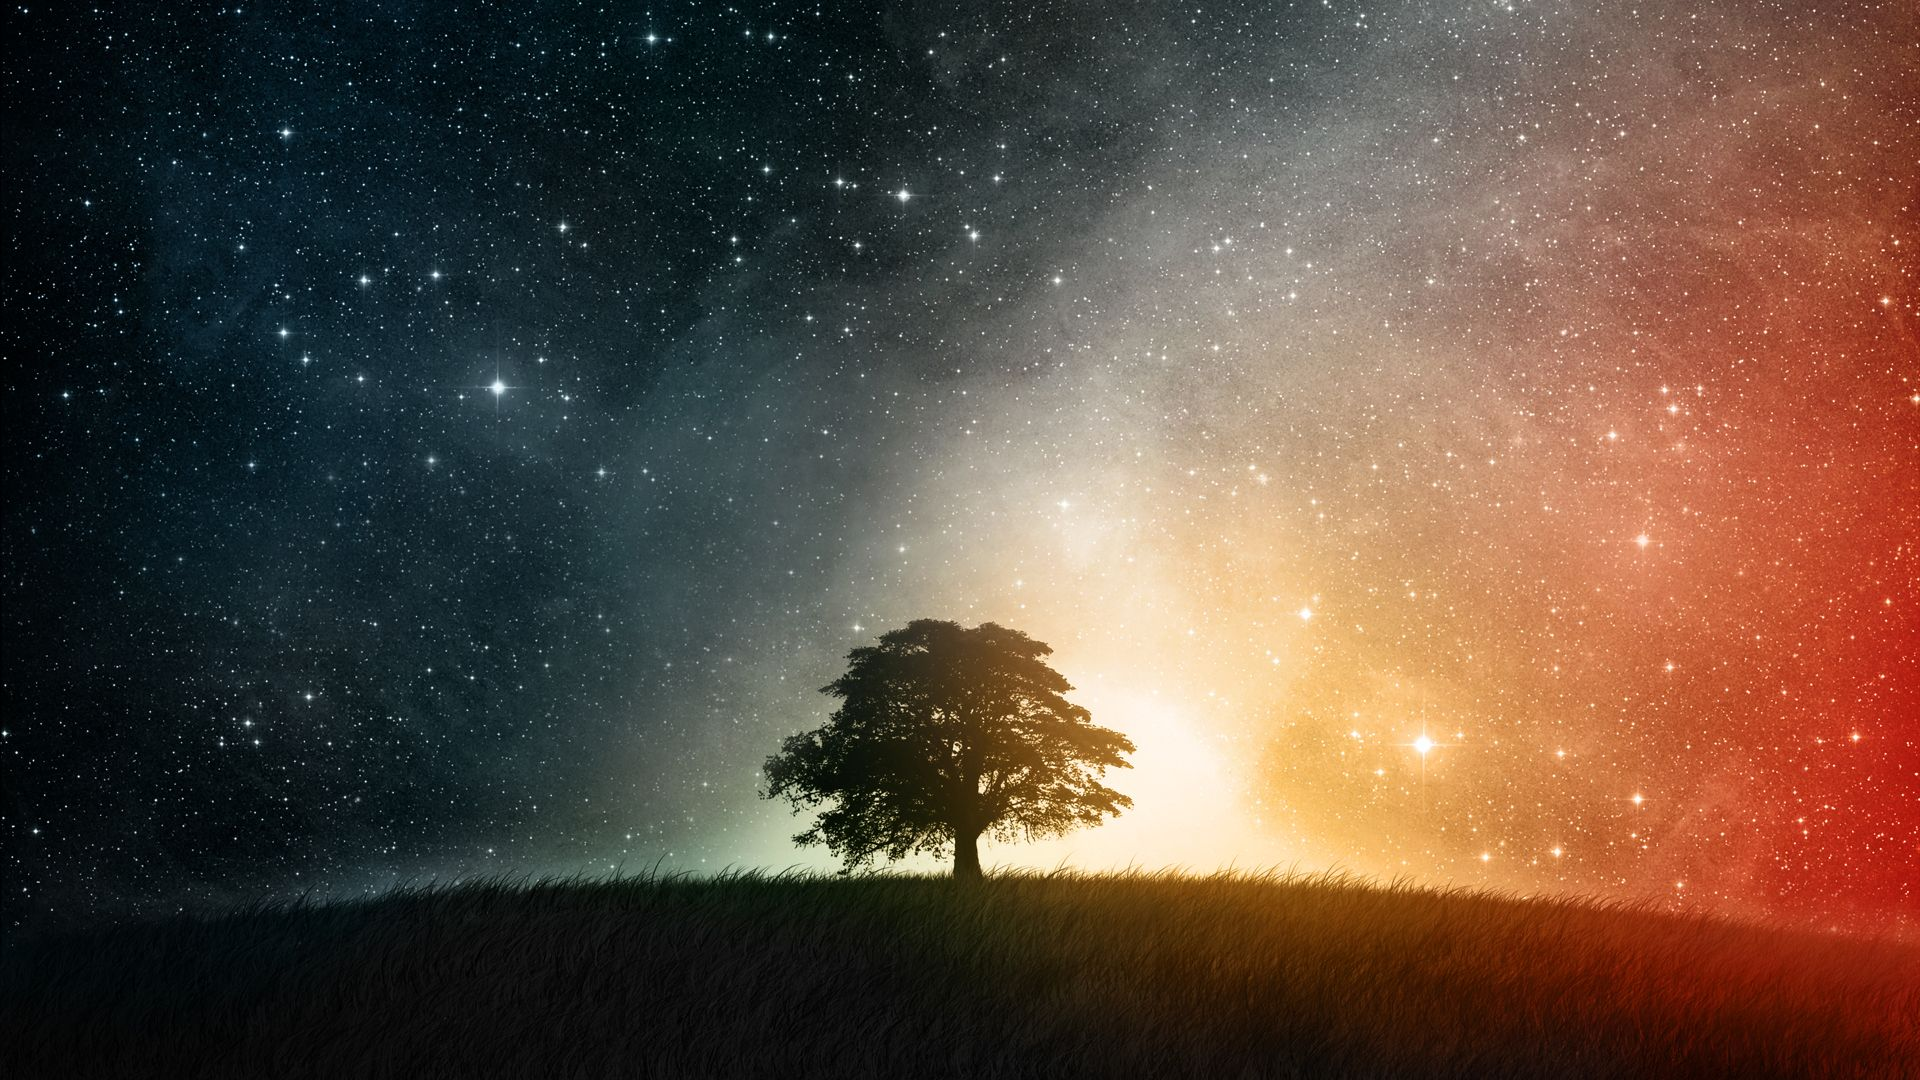 Tree Under Stars With Shooting Stars At Night Background